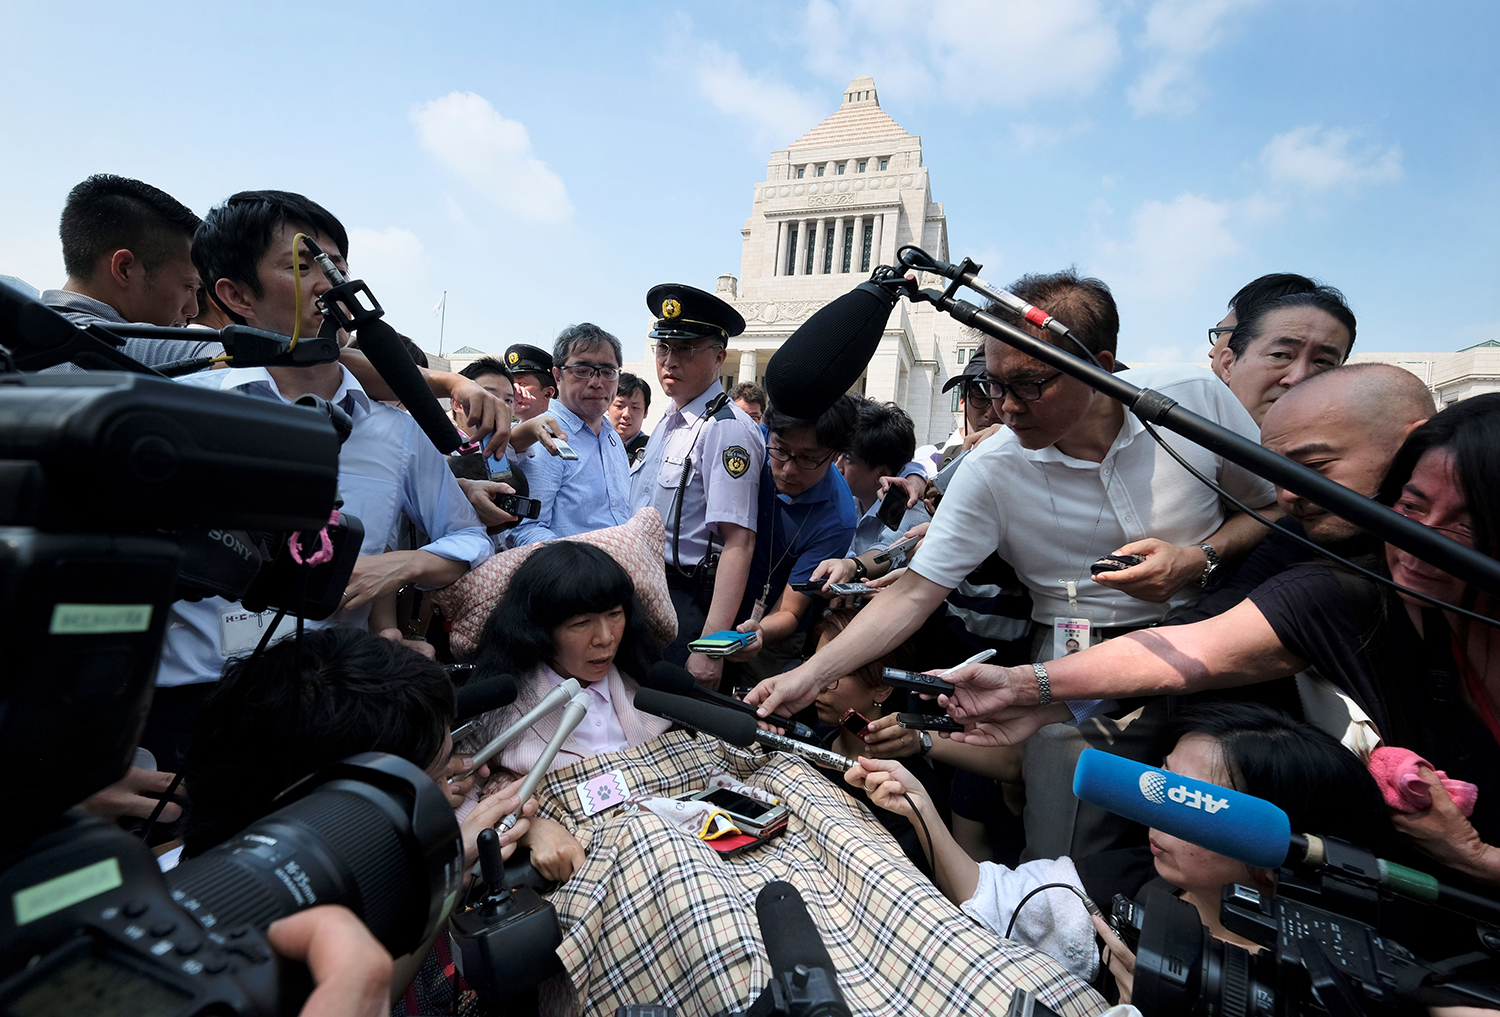 Japanese lawmaker Eiko Kimura is surrounded by the media upon her arrival at Parliament in Tokyo on Aug. 1. Two lawmakers with serious paralysis took their seats in Japan's upper house to cheers from supporters, marking the first time those with severe disabilities have served in the body. KAZUHIRO NOGI/AFP/Getty Images